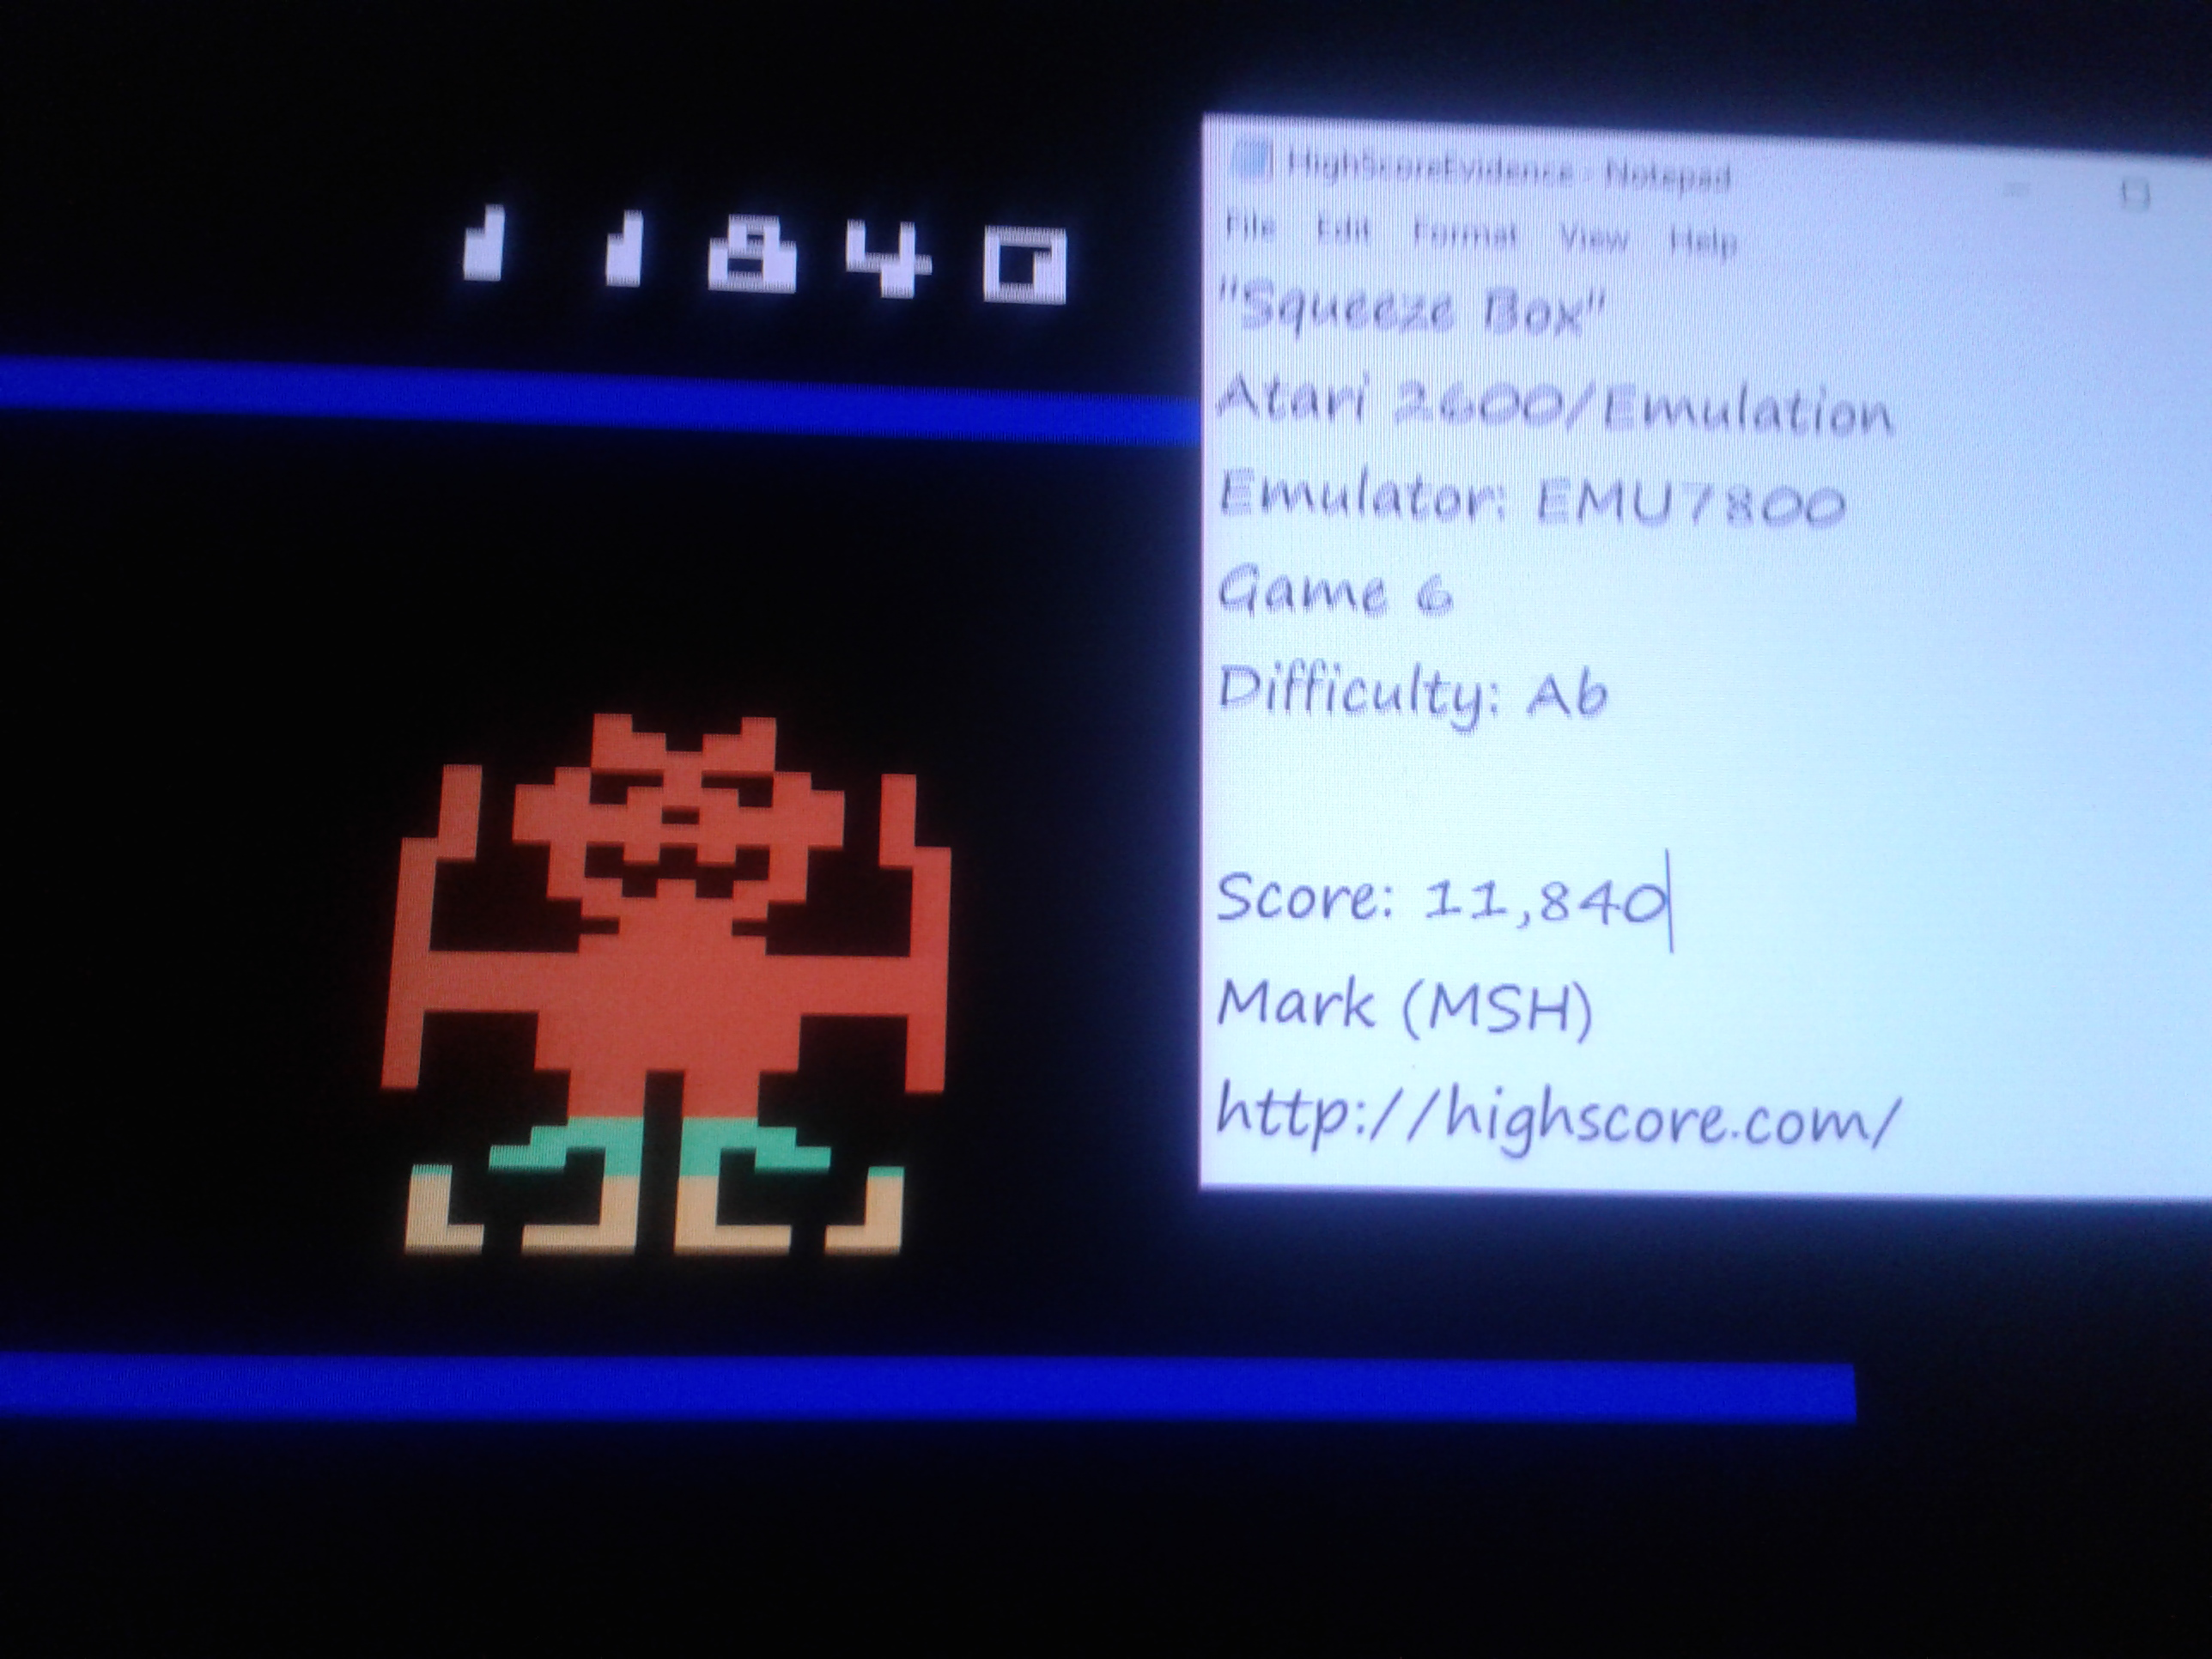 Mark: Squeeze Box: Game 6 [Difficulty AB] (Atari 2600 Emulated) 11,840 points on 2019-01-26 01:13:12